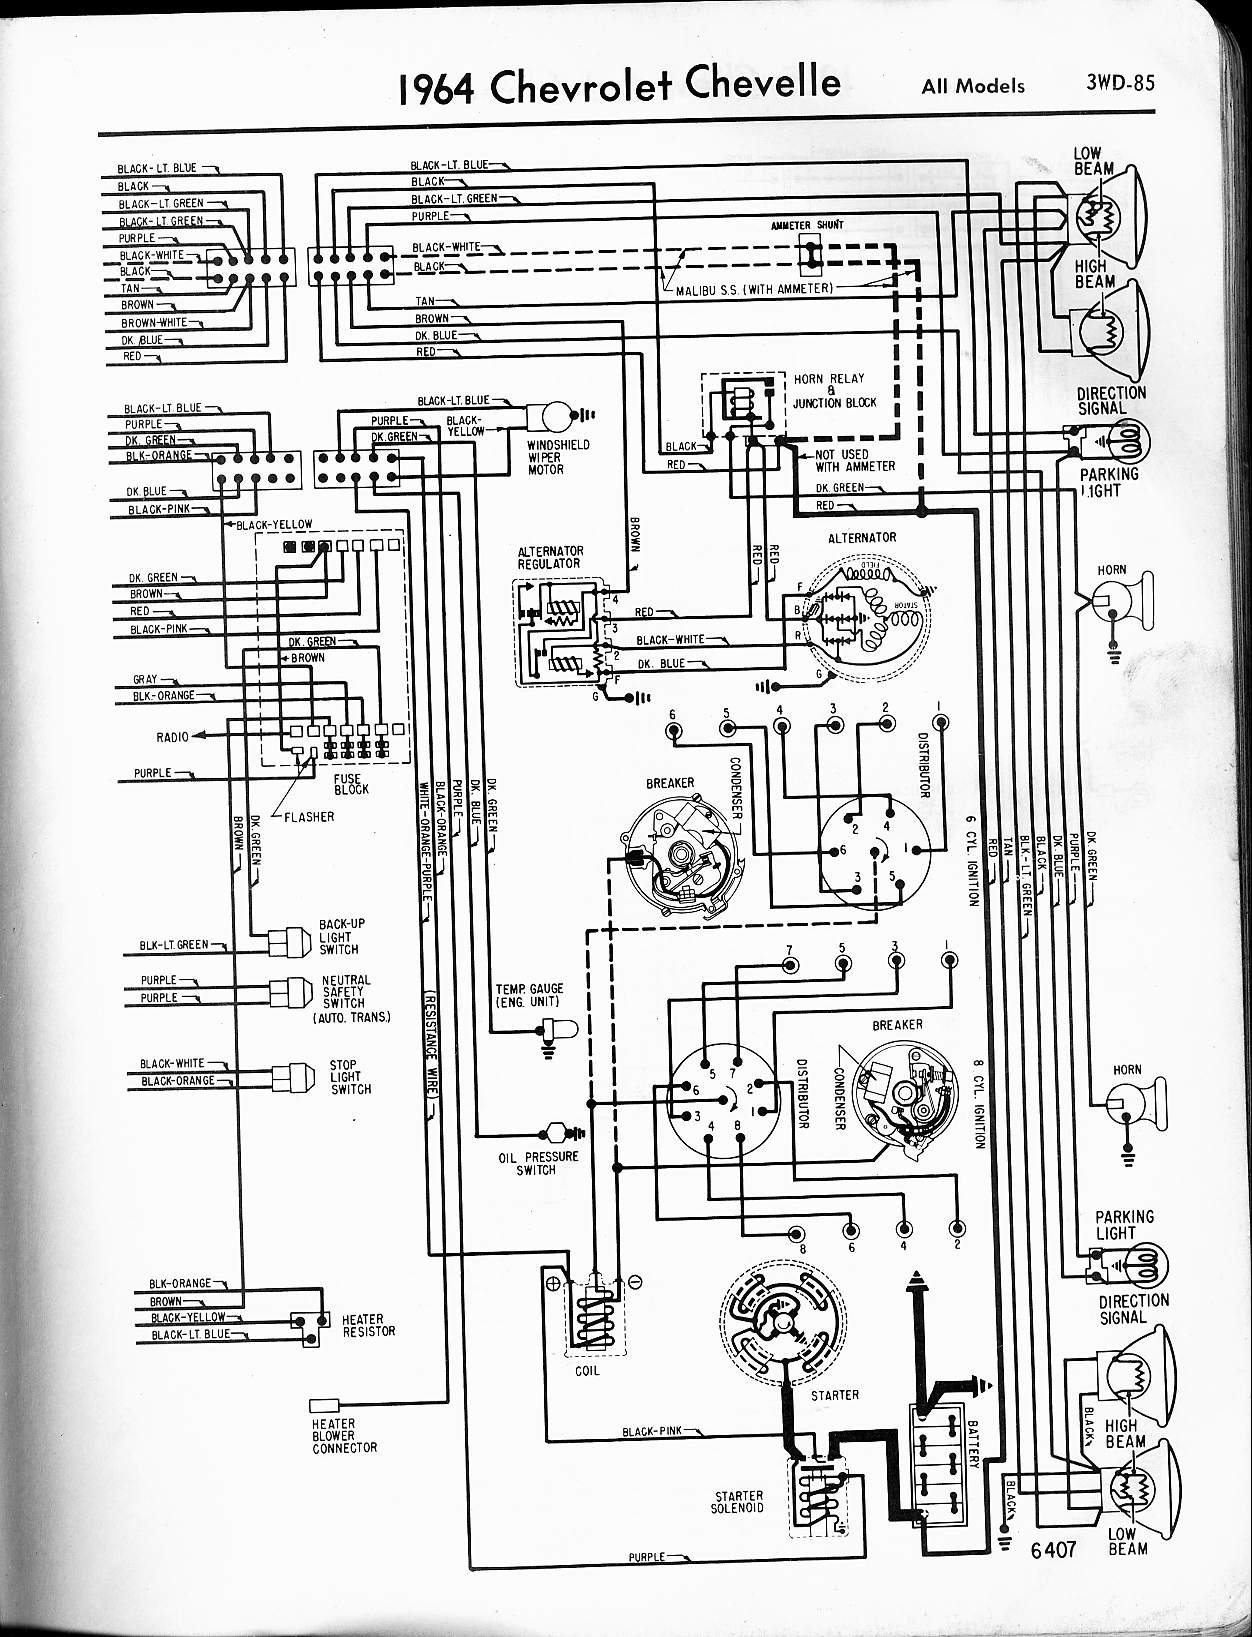 Chevrolet Chevelle Alternator Wiring Diagram Guide And 85 Mustang Chevy Diagrams Rh Wizard Com 1 Wire